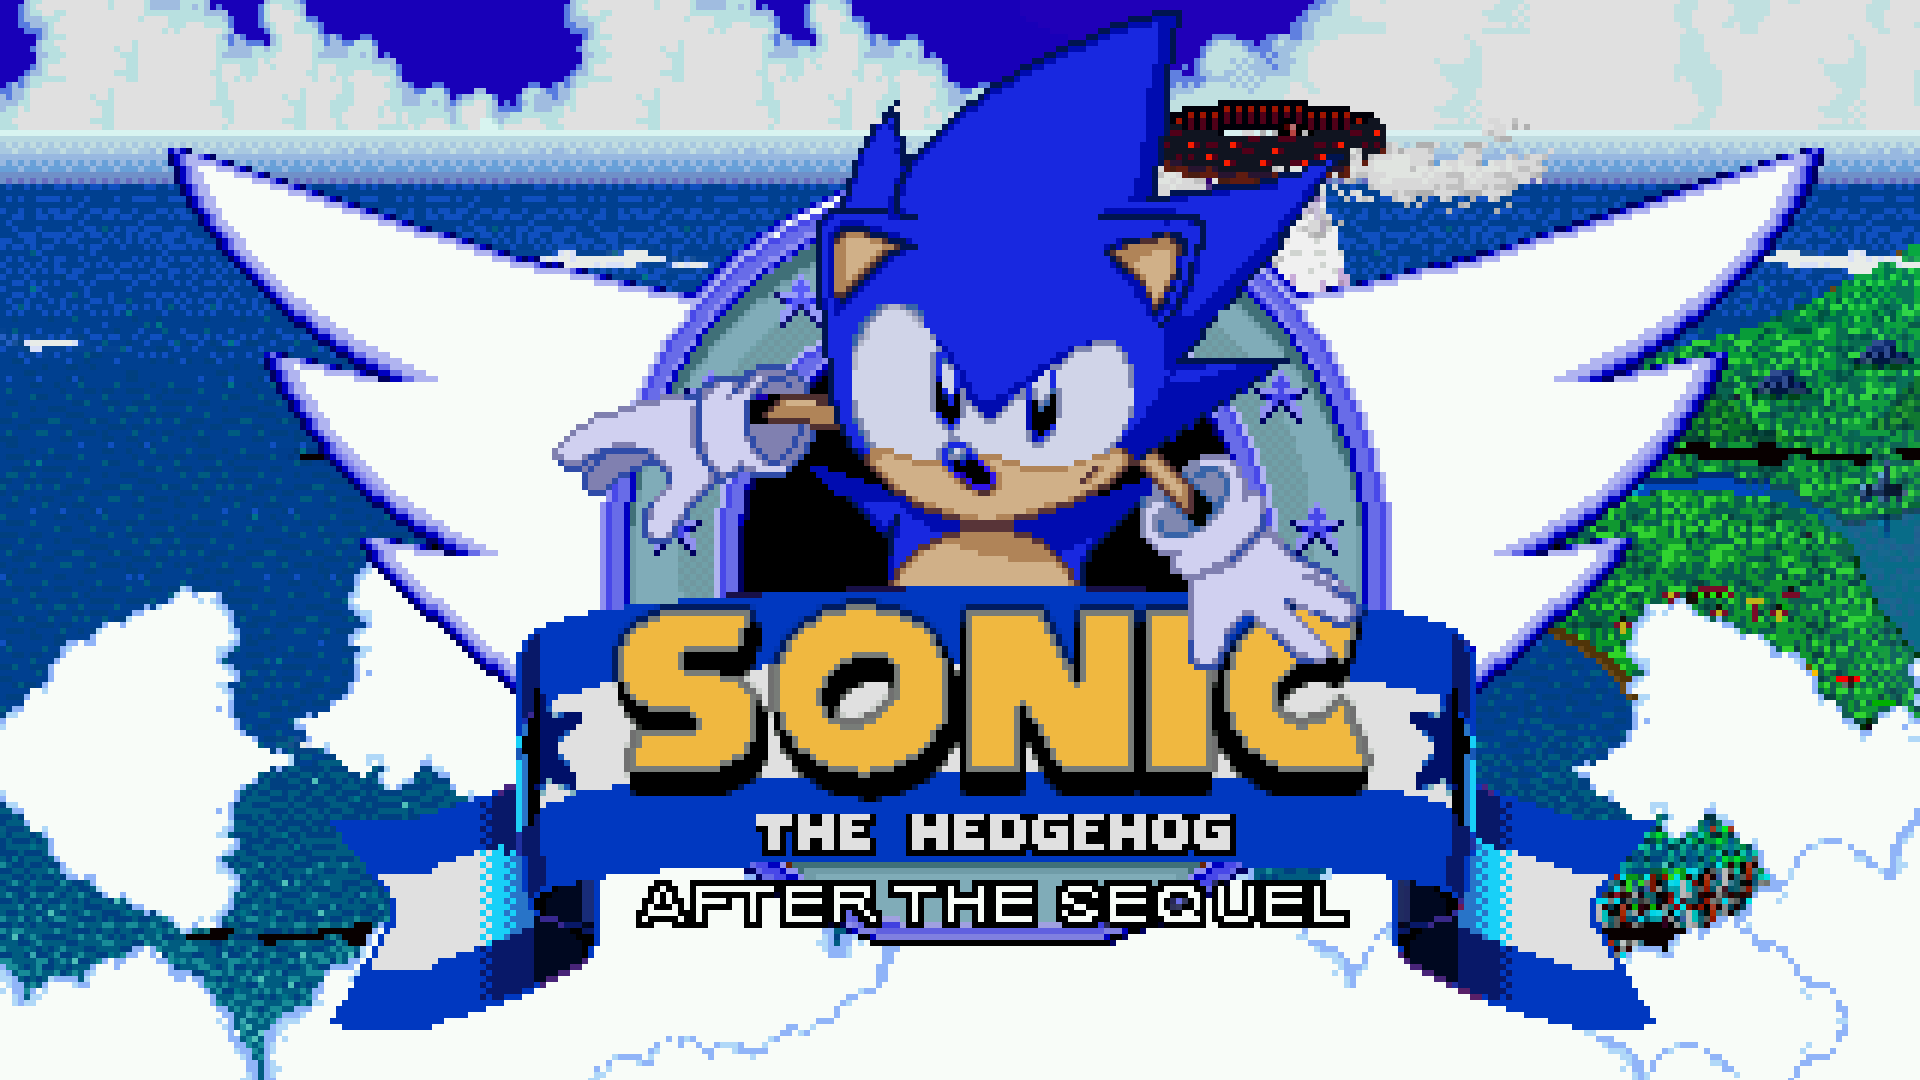 Sonic: After the Sequel Logo